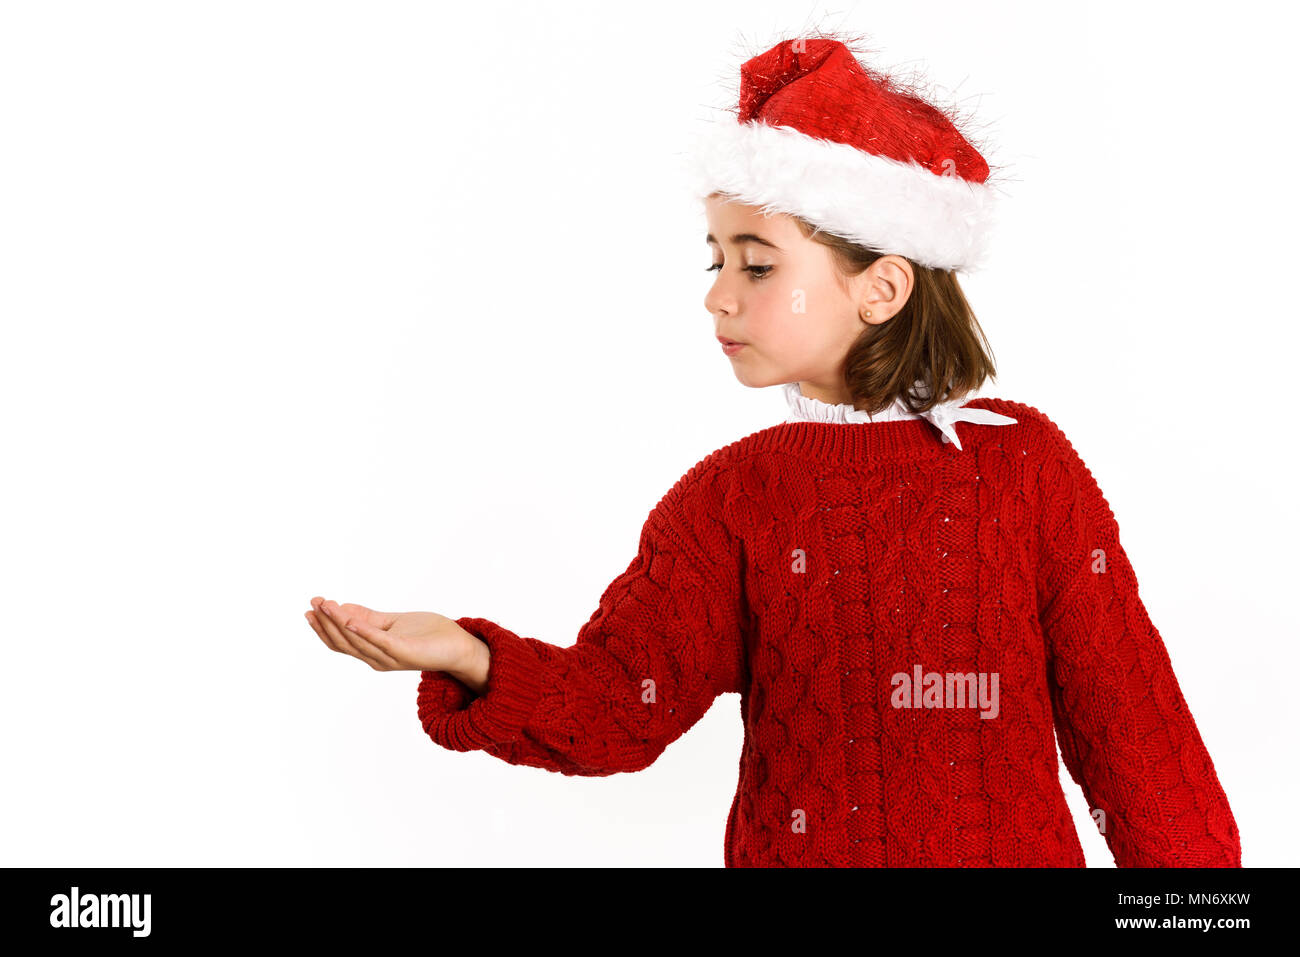 9a06271b4b97 Adorable little girl wearing santa hat isolated on white background. Winter  clothes for Christmas